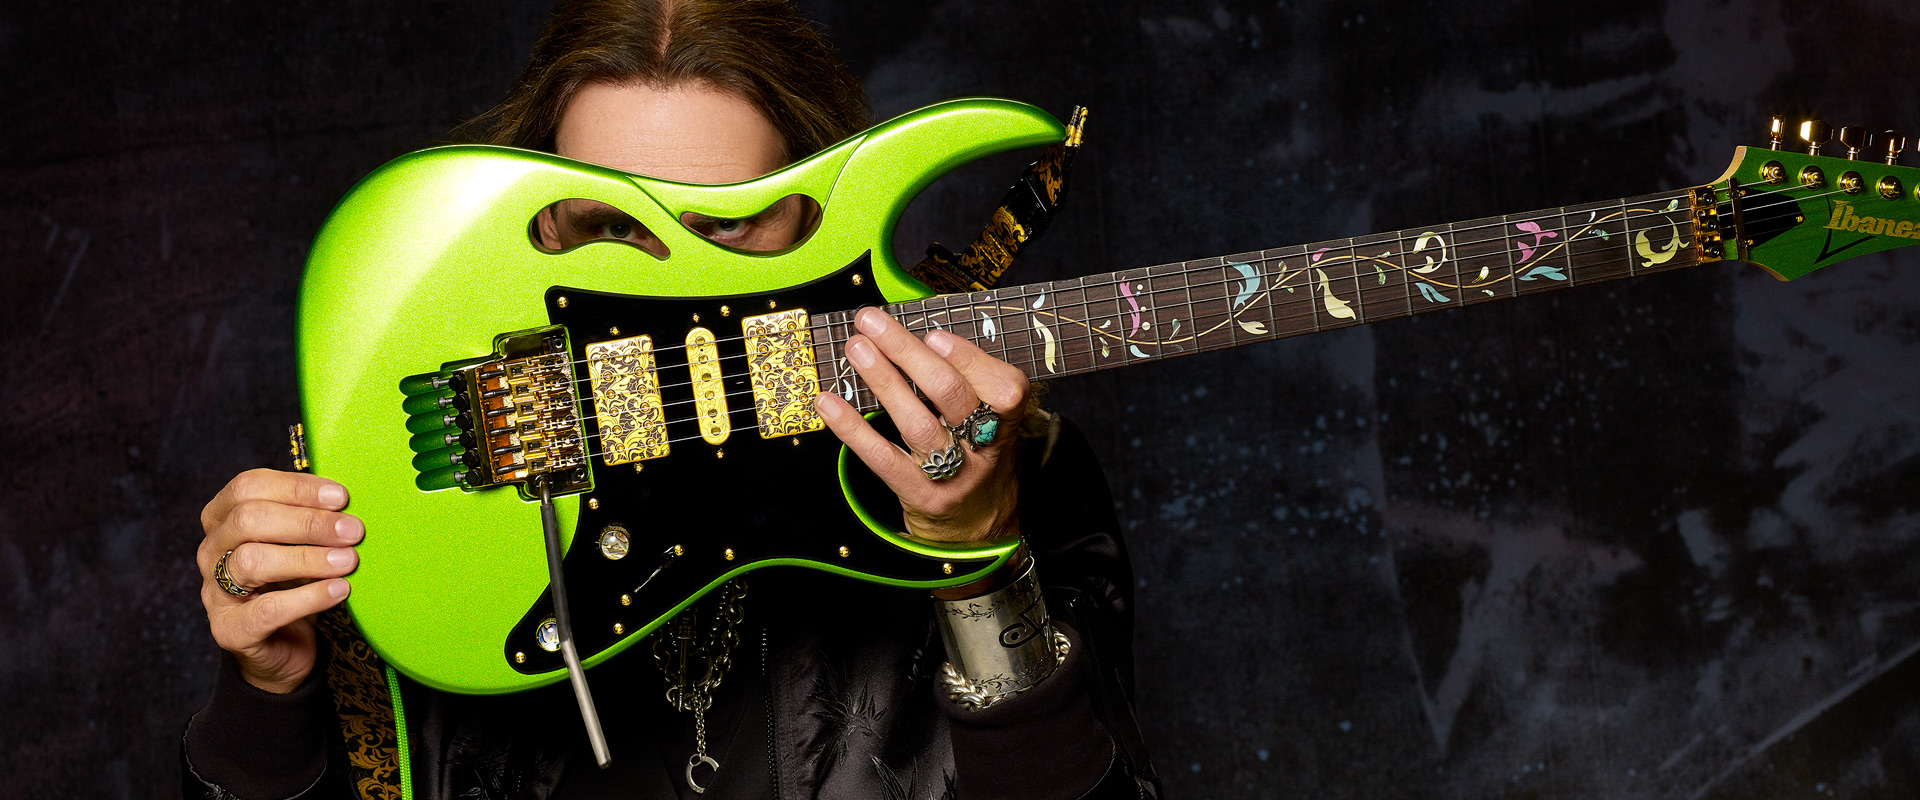 Steve Vai photo by Larry DiMarzio